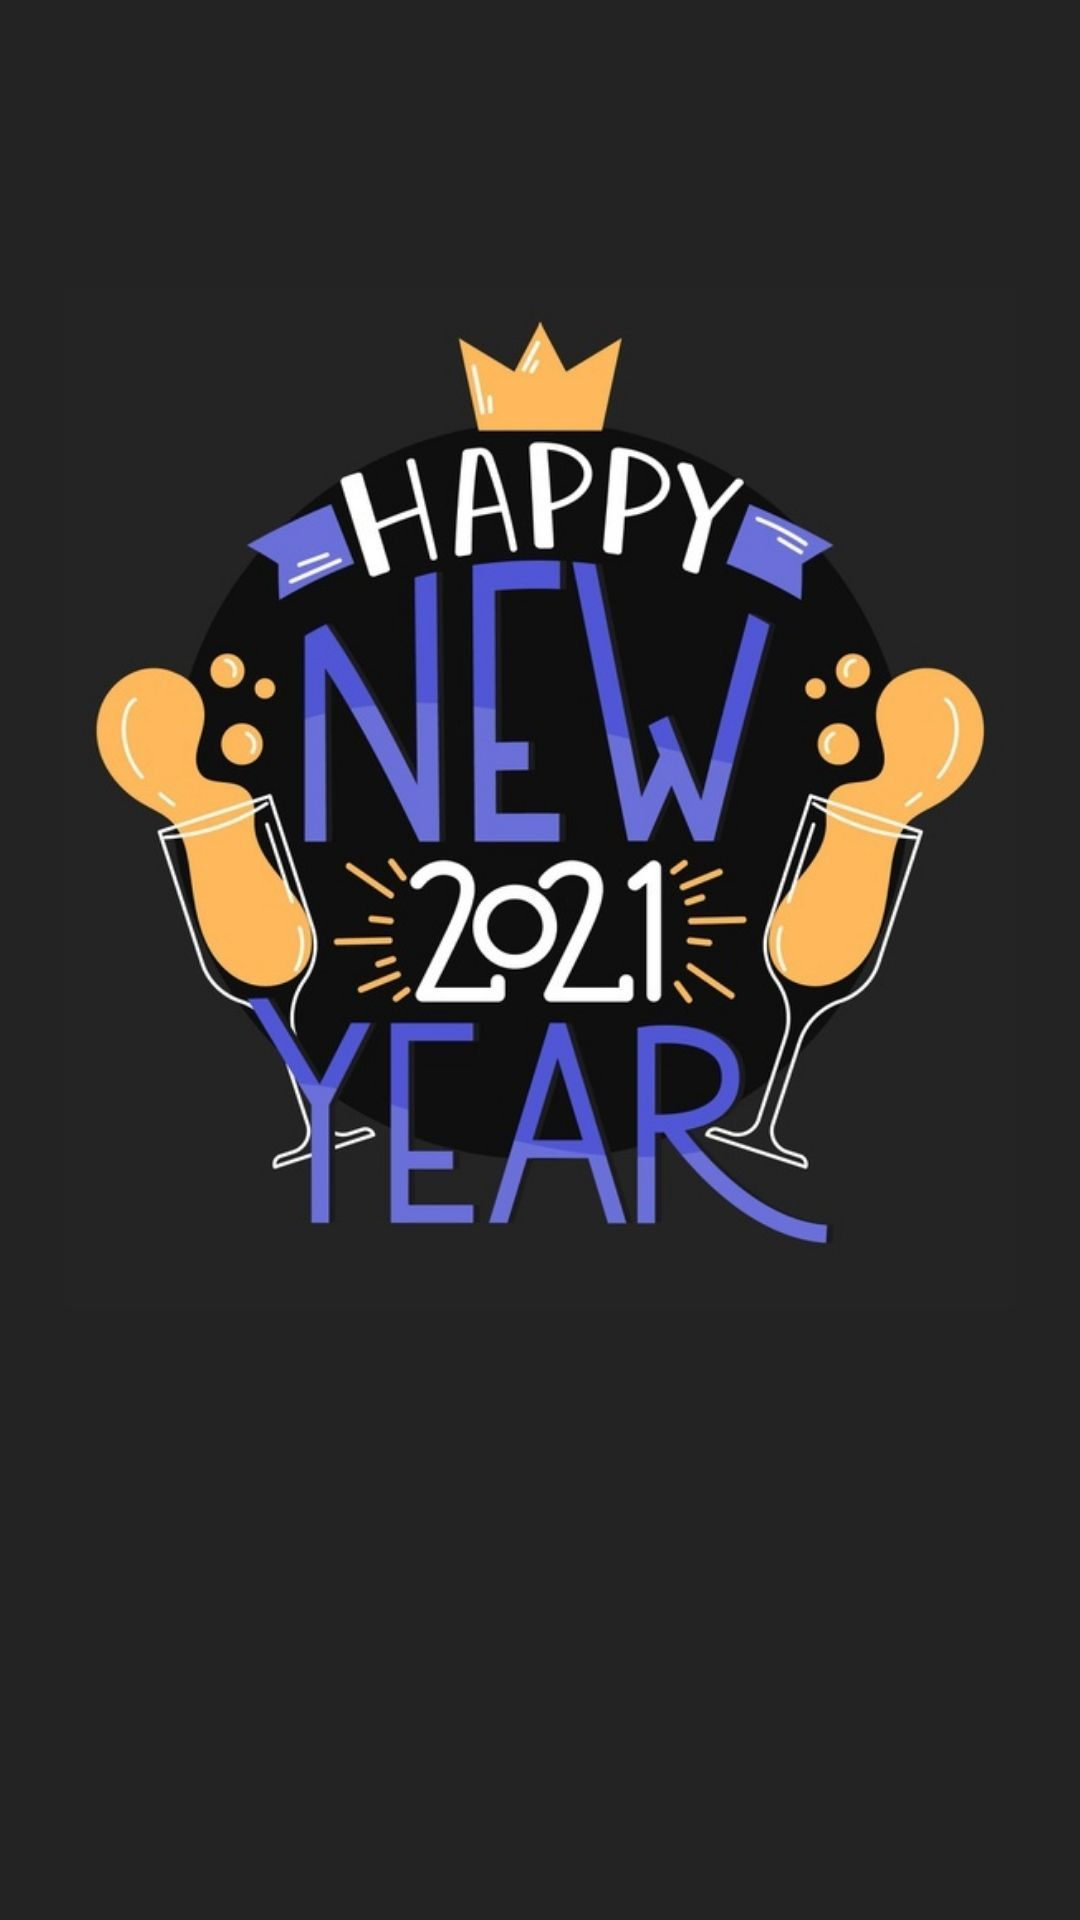 New Year Cute Wallpapers 2021 For Android And Iphone Backgrounds Cute Wallpapers Happy New Year Images Happy New Year Wallpaper